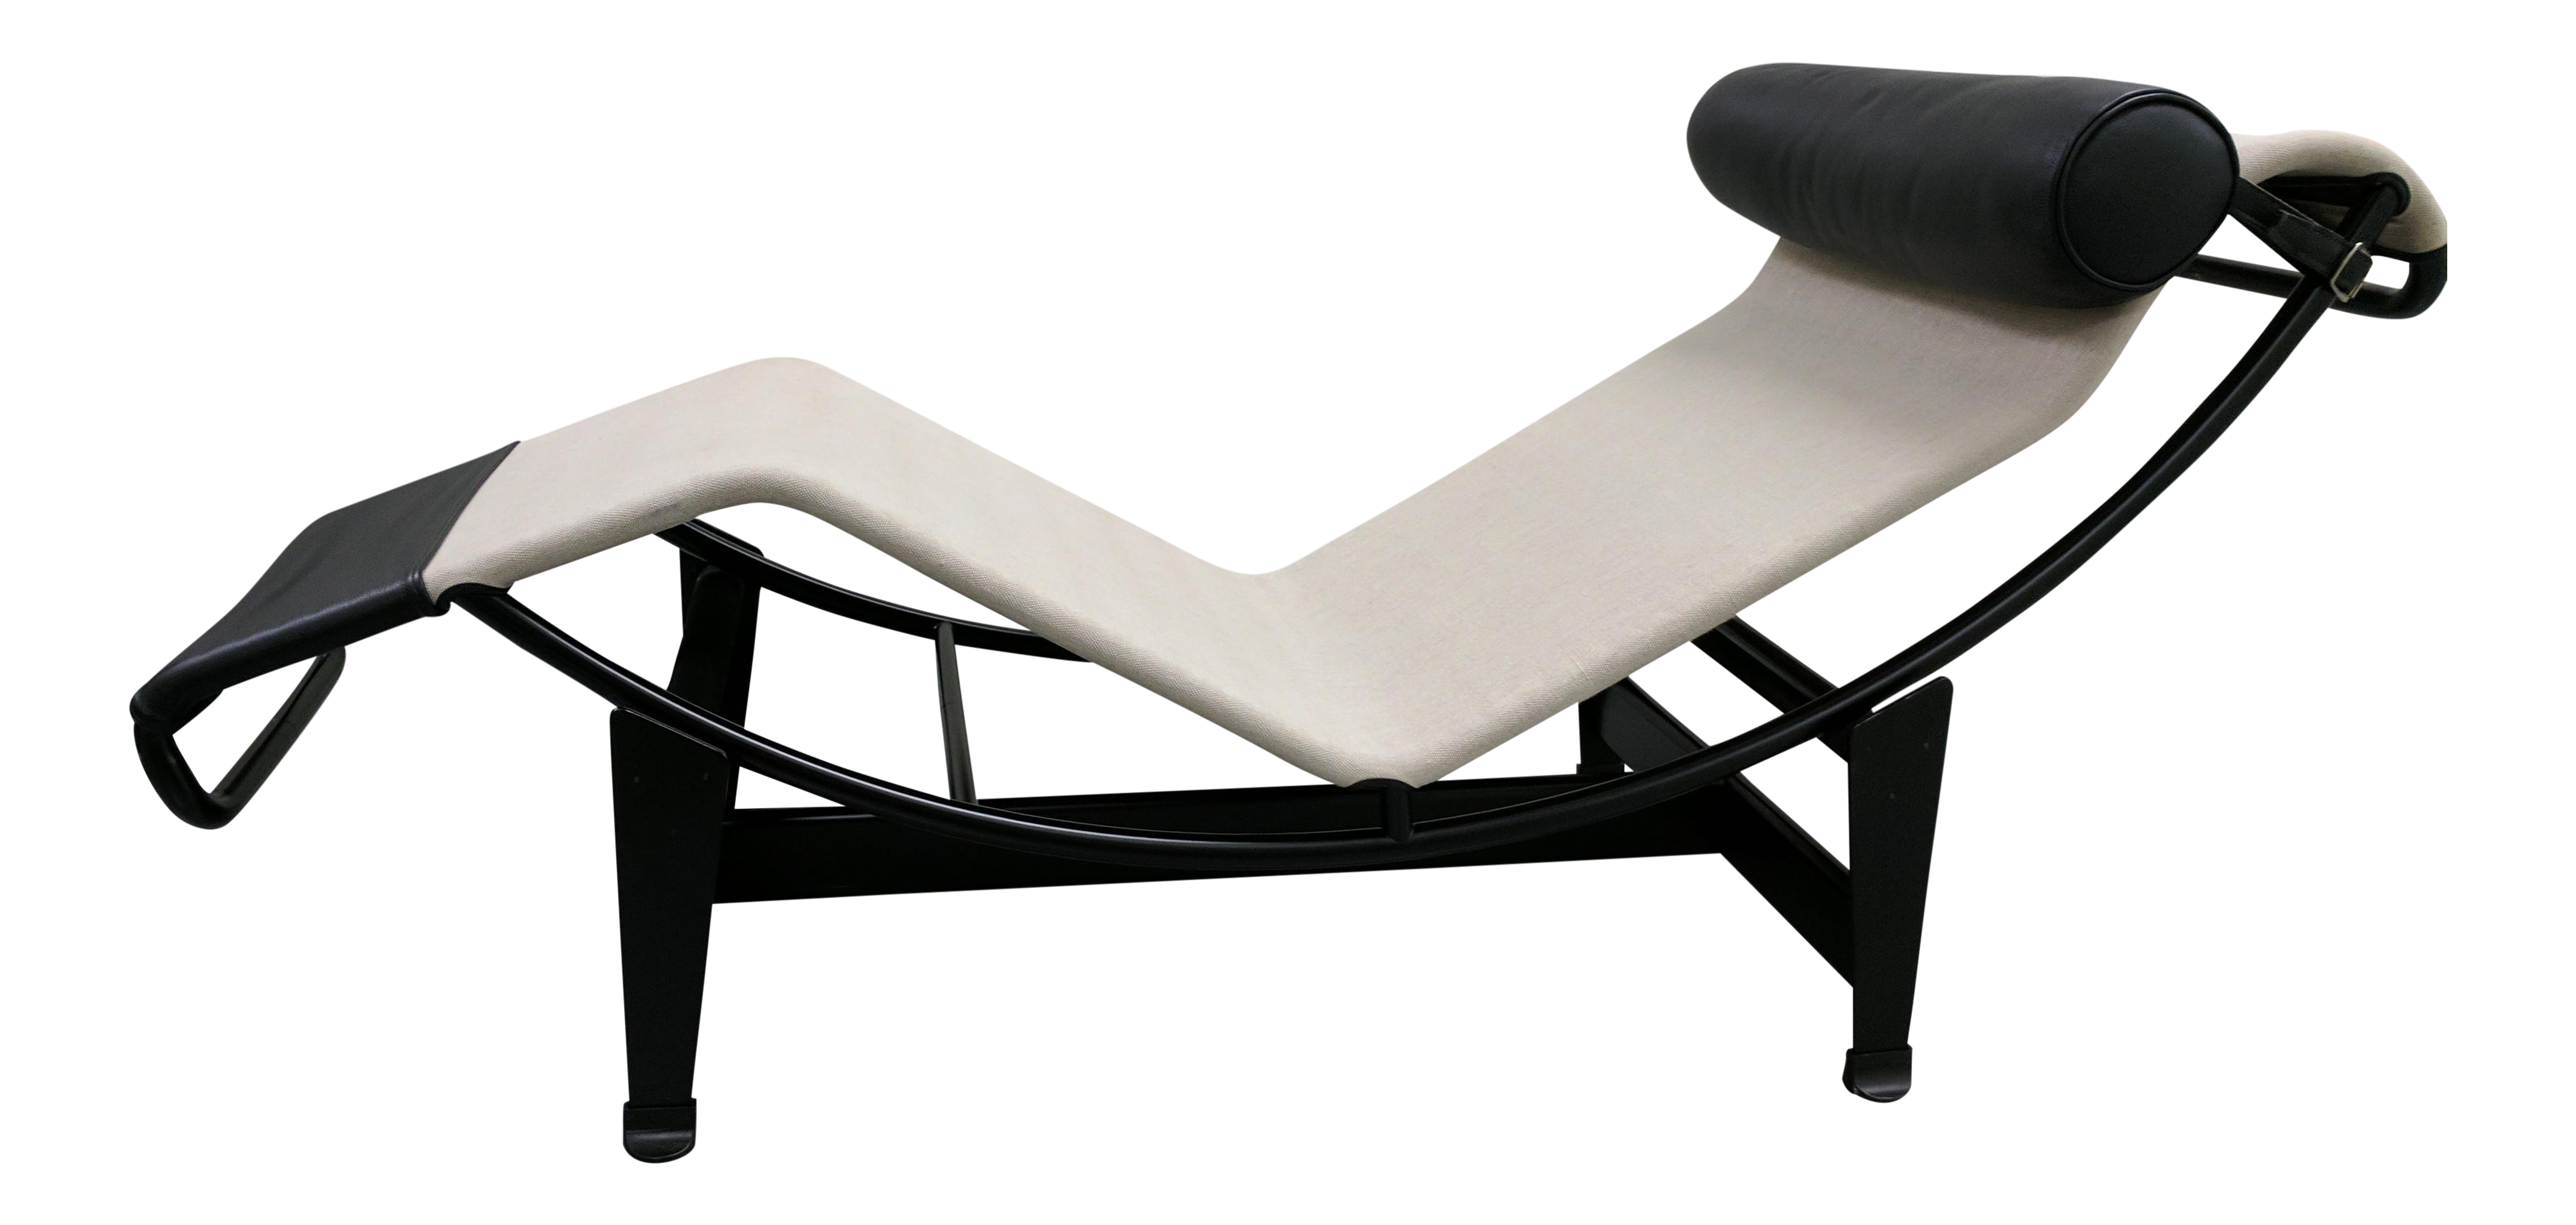 Le corbusier designed lc4 chaise longue chairish for Chaise le corbusier